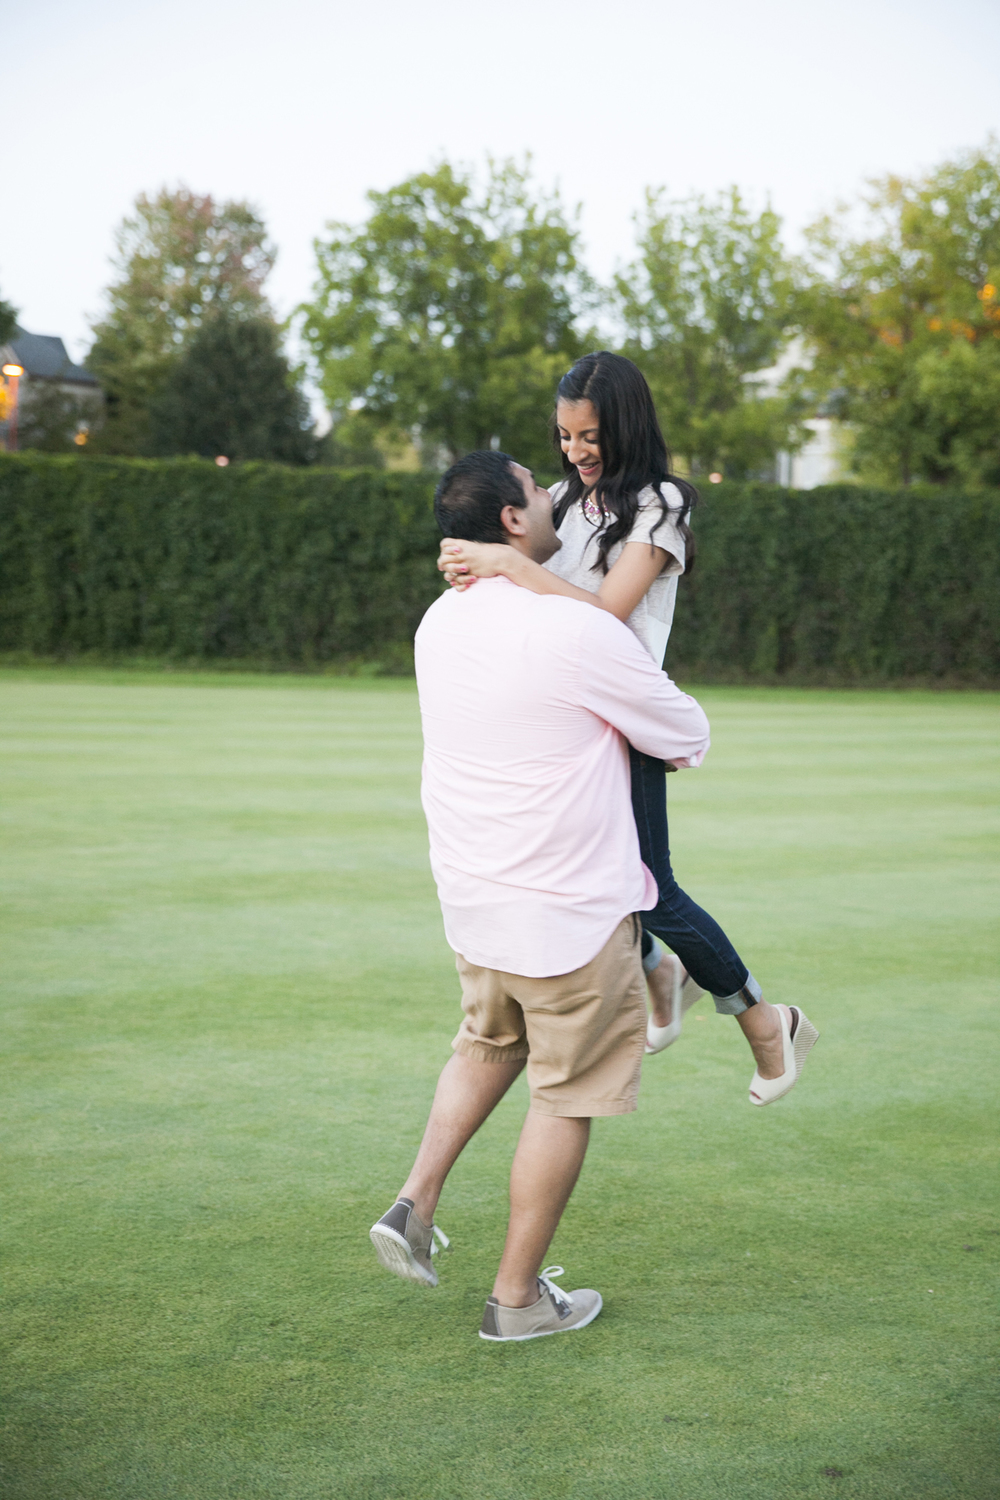 centennial_lake_edina_engagement_21.jpg